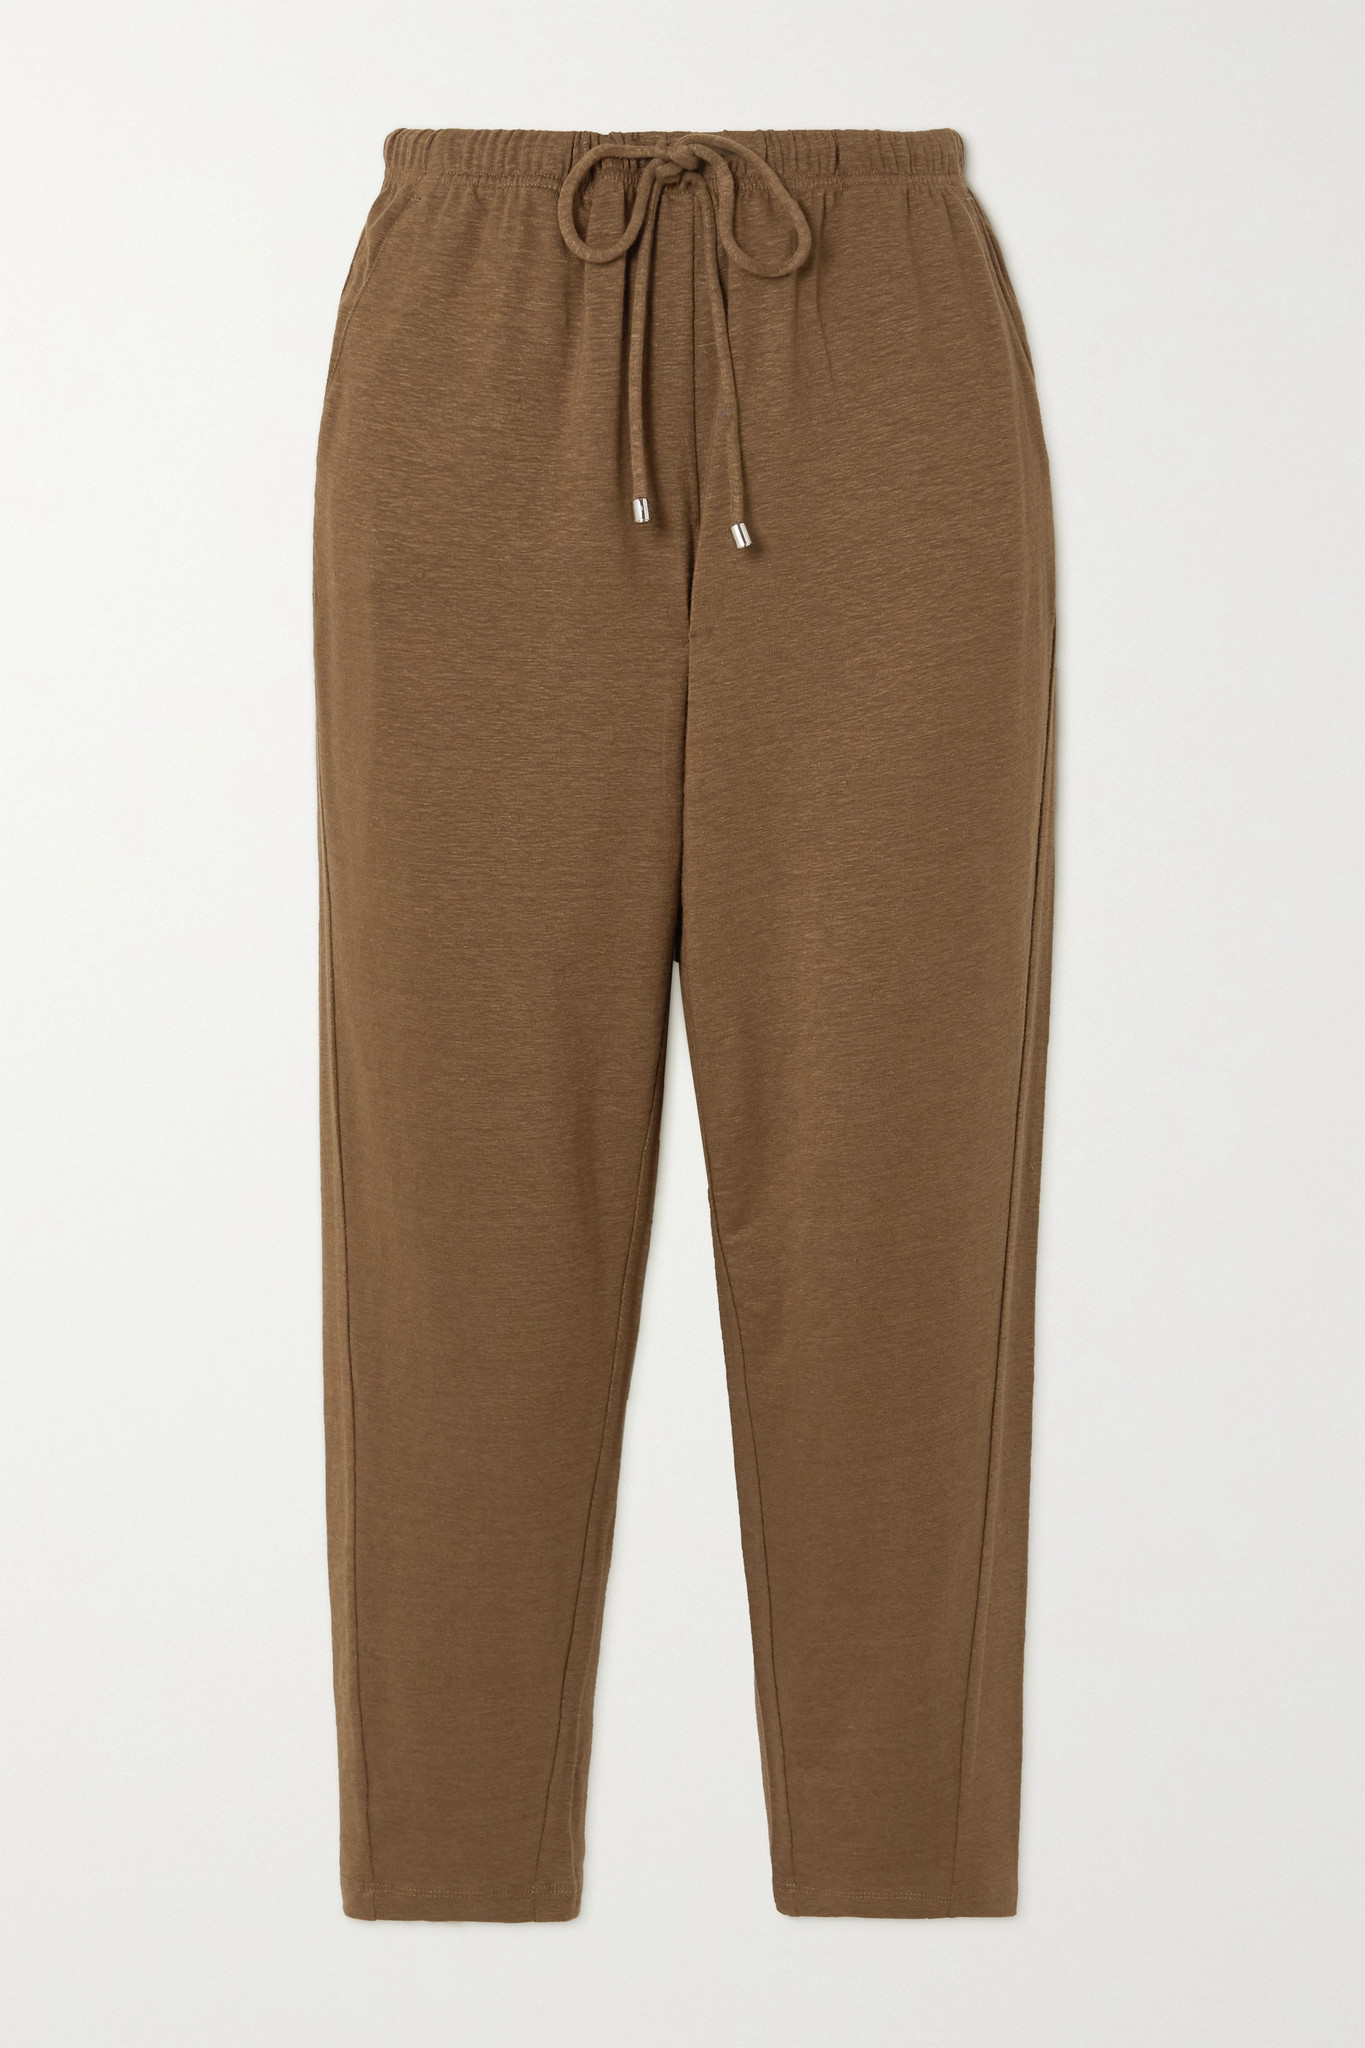 MAX MARA - + Leisure Cristin Stretch-linen Track Pants - Brown - small